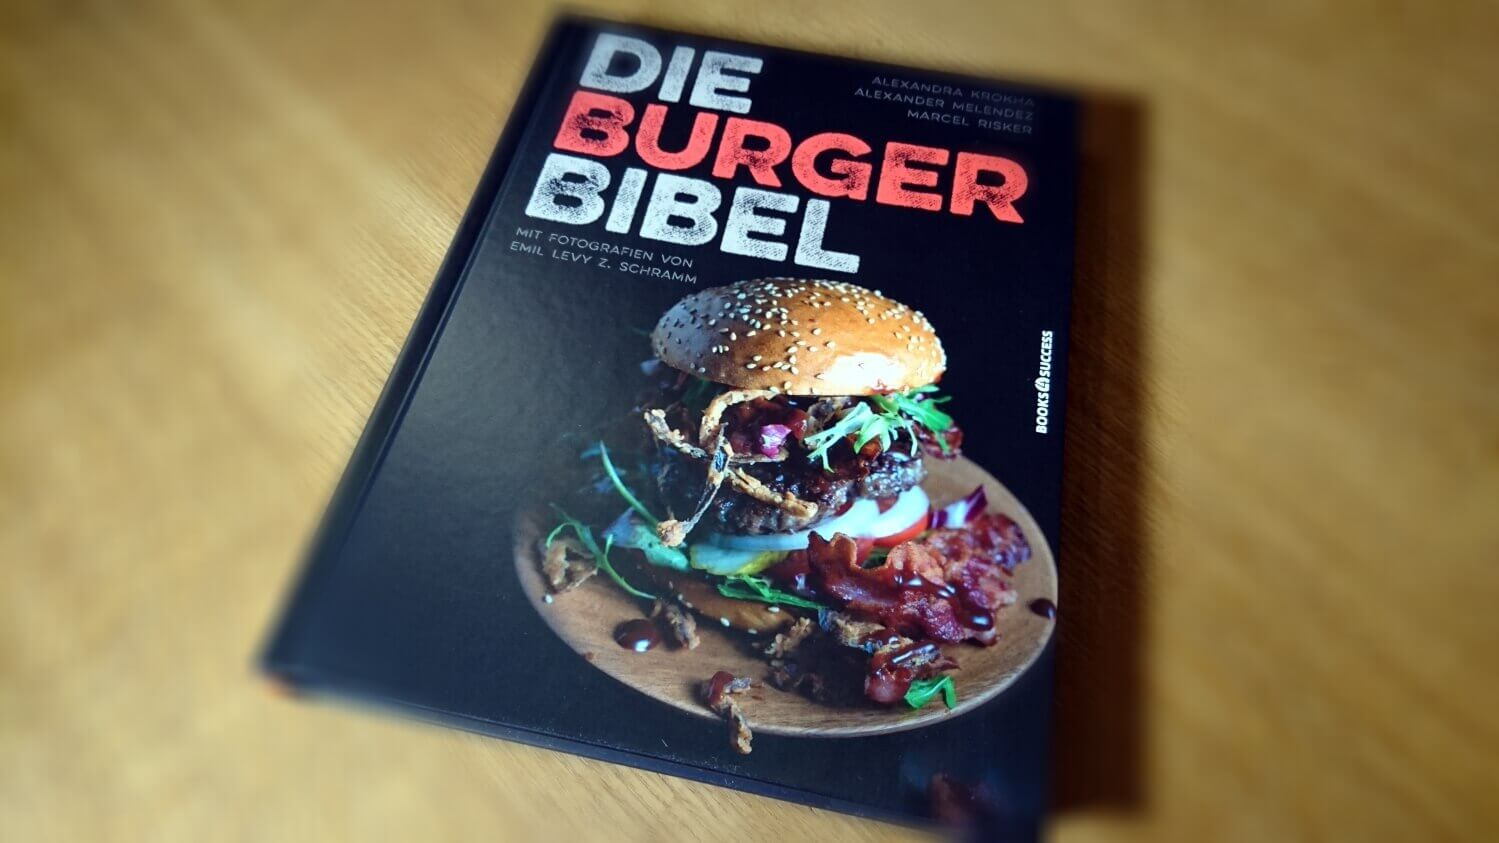 Die Burger Bibel Burger City Guide grillrezepte_Die Burger Bibel Burger City Guide